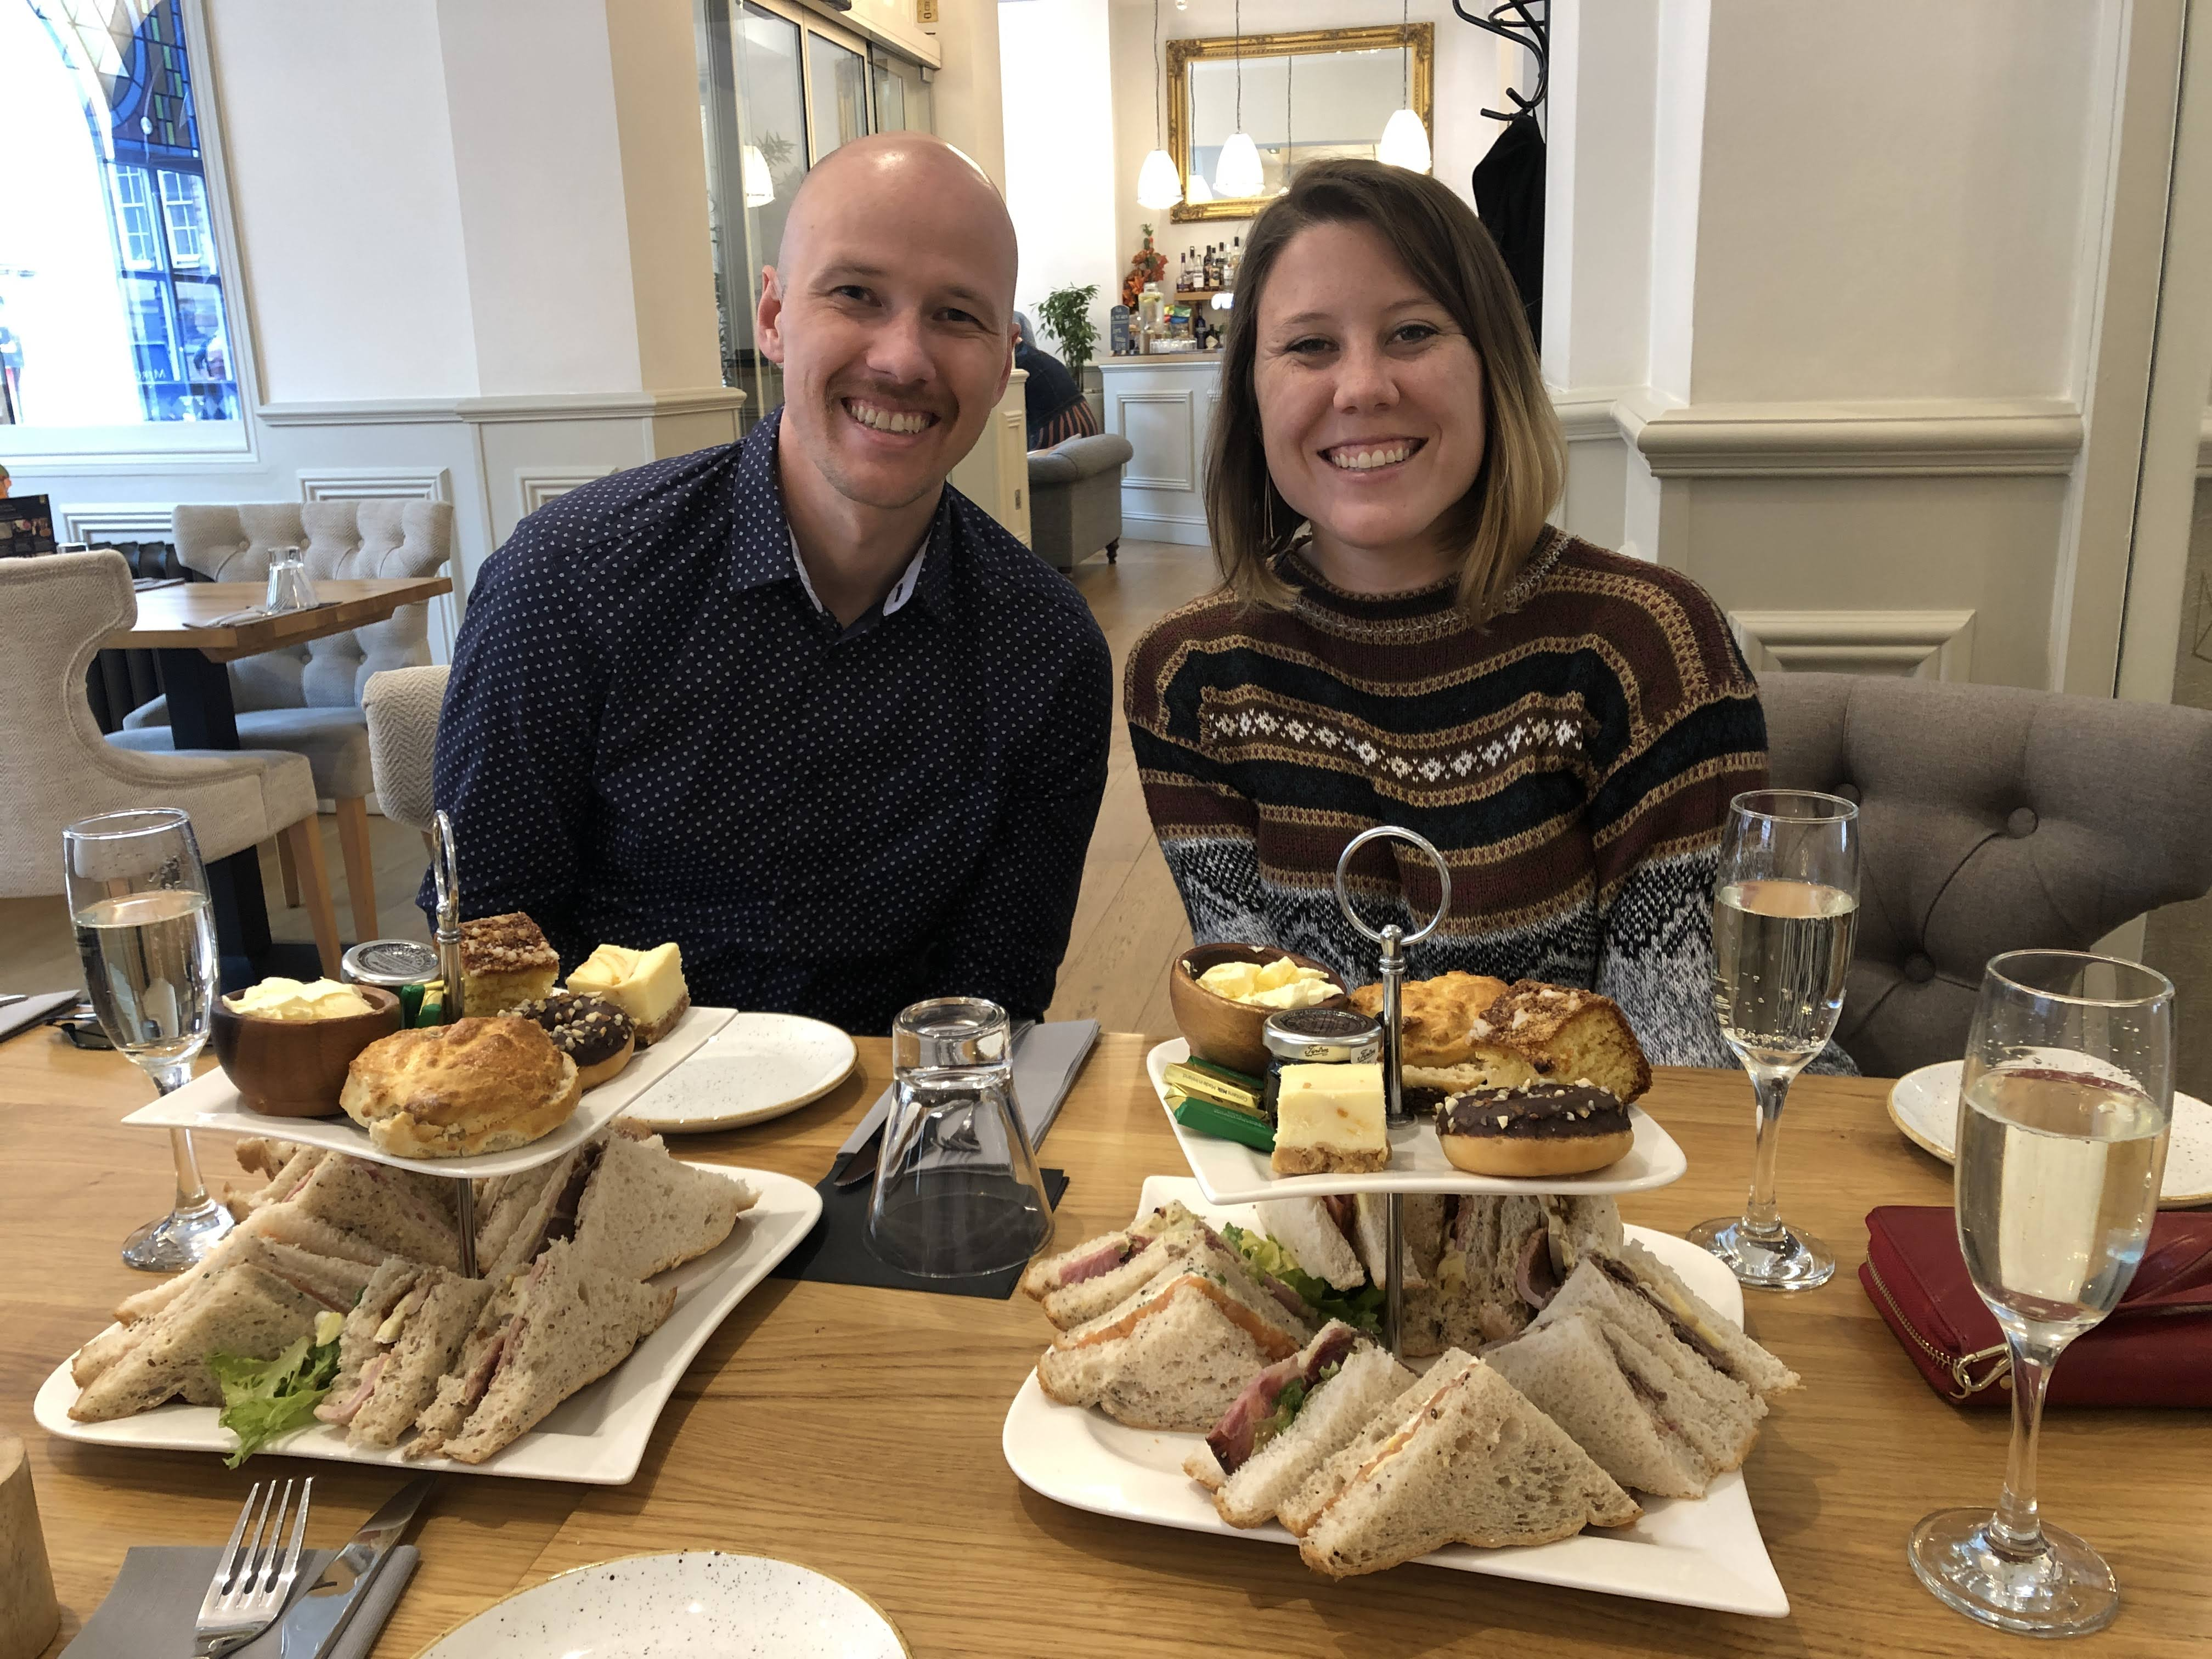 afternoon tea at the Royal King's Arms Hotel in Lancaster